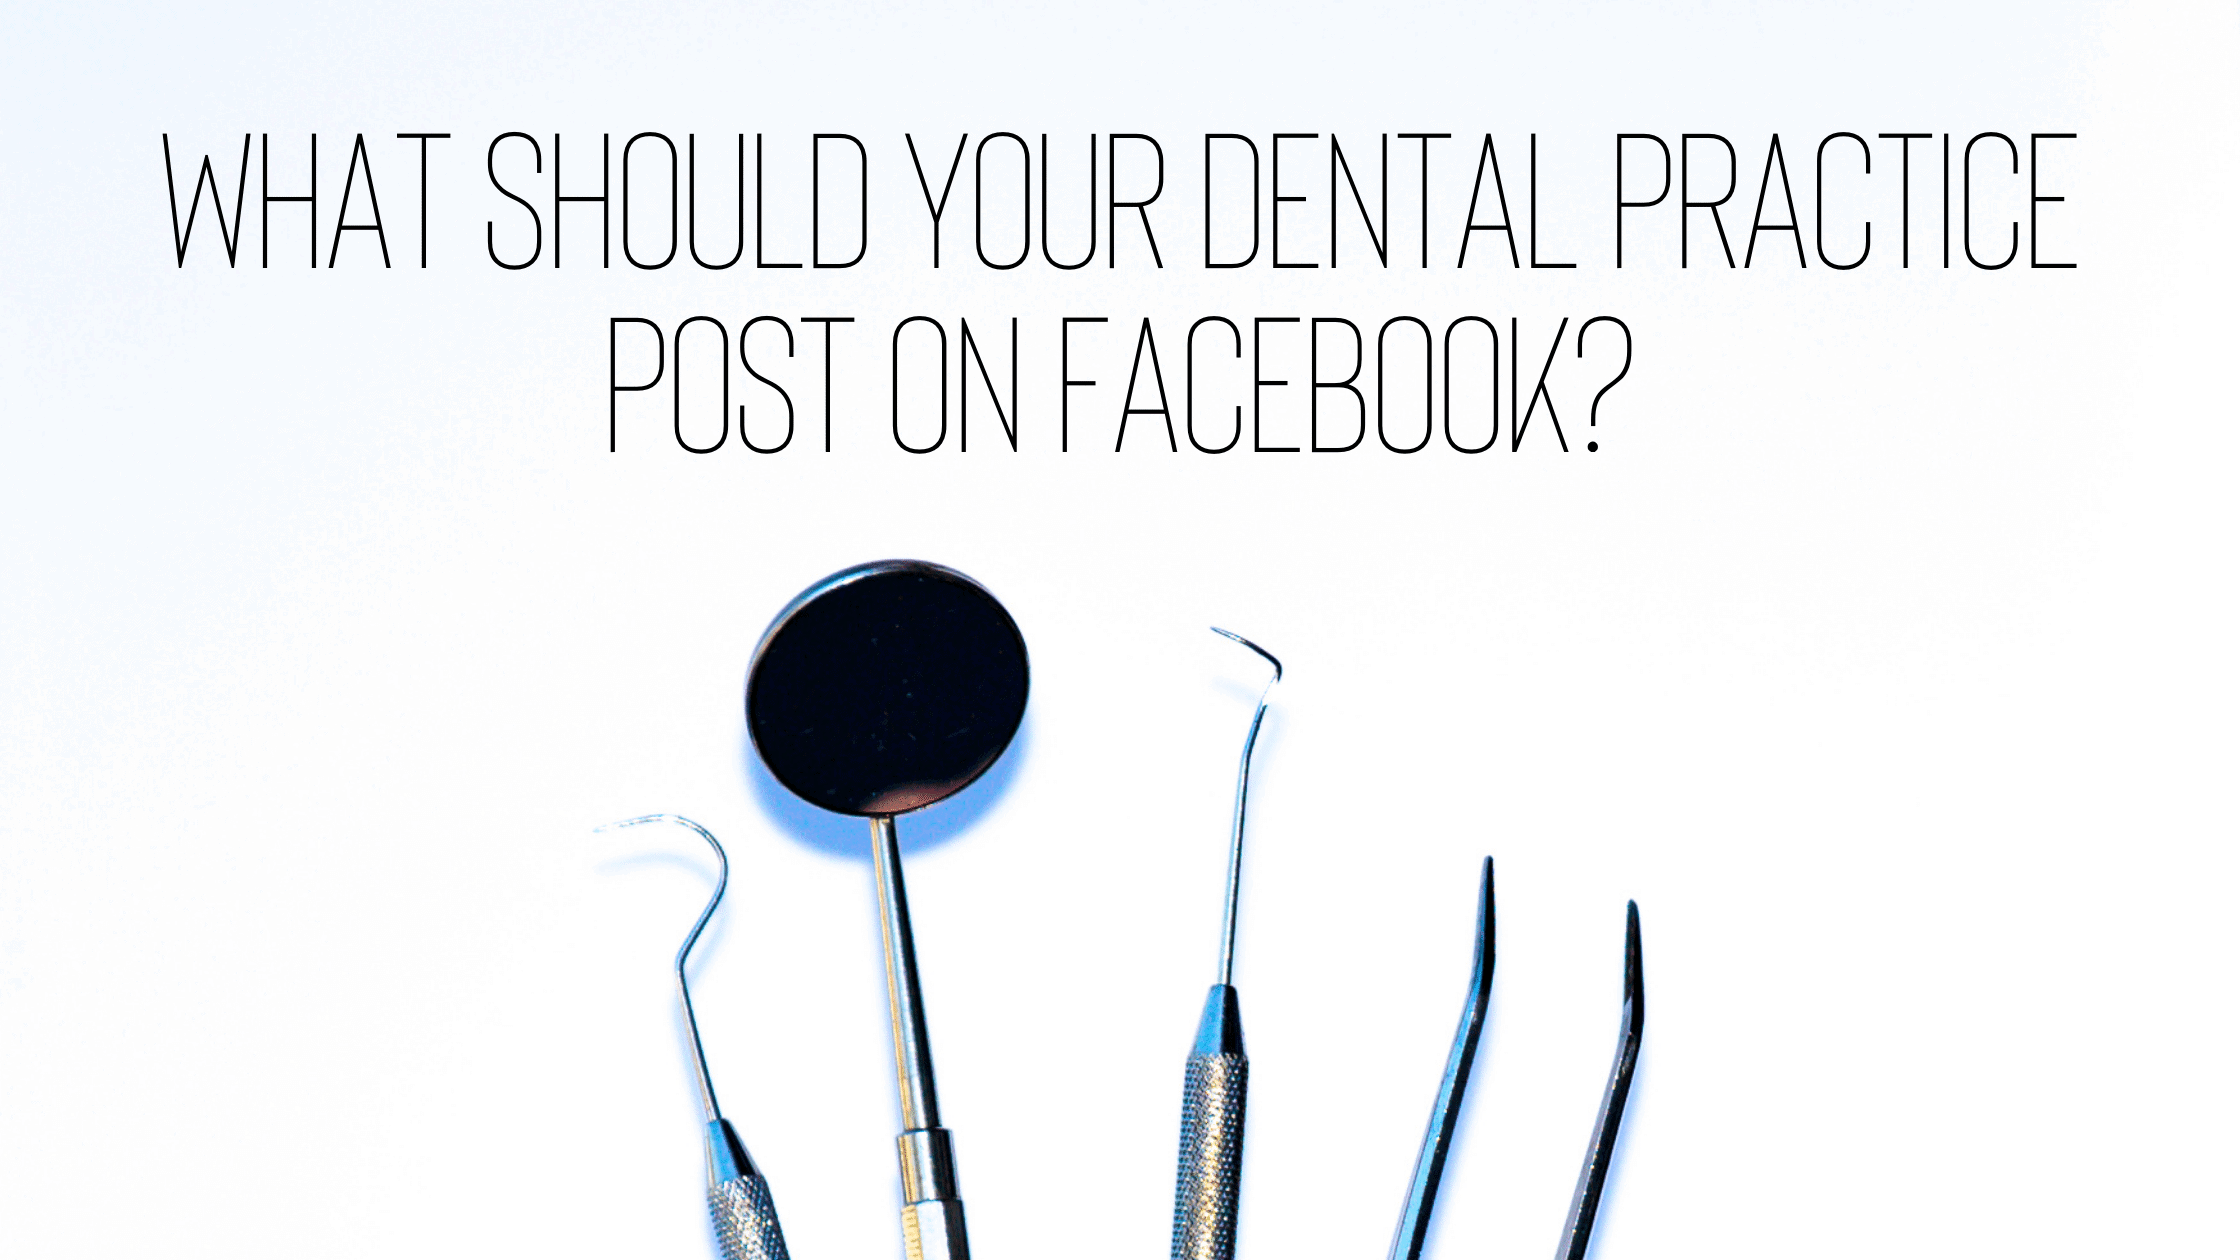 What Should Your Dental Practice Post on Facebook